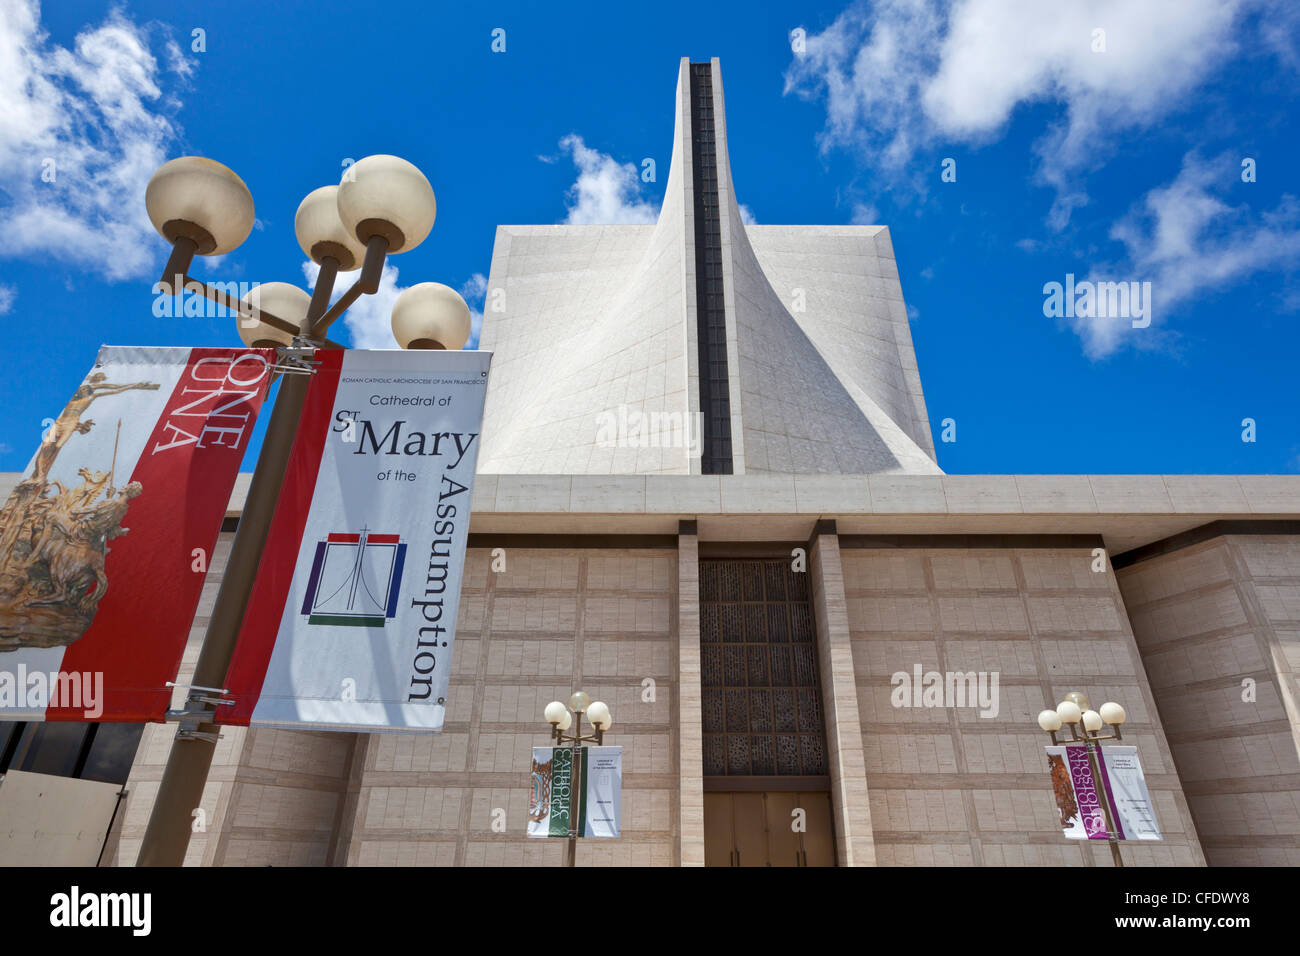 St. Mary's cathedral (The Cathedral of St. Mary of the Assumption), a Catholic cathedral, San Francisco, California, - Stock Image